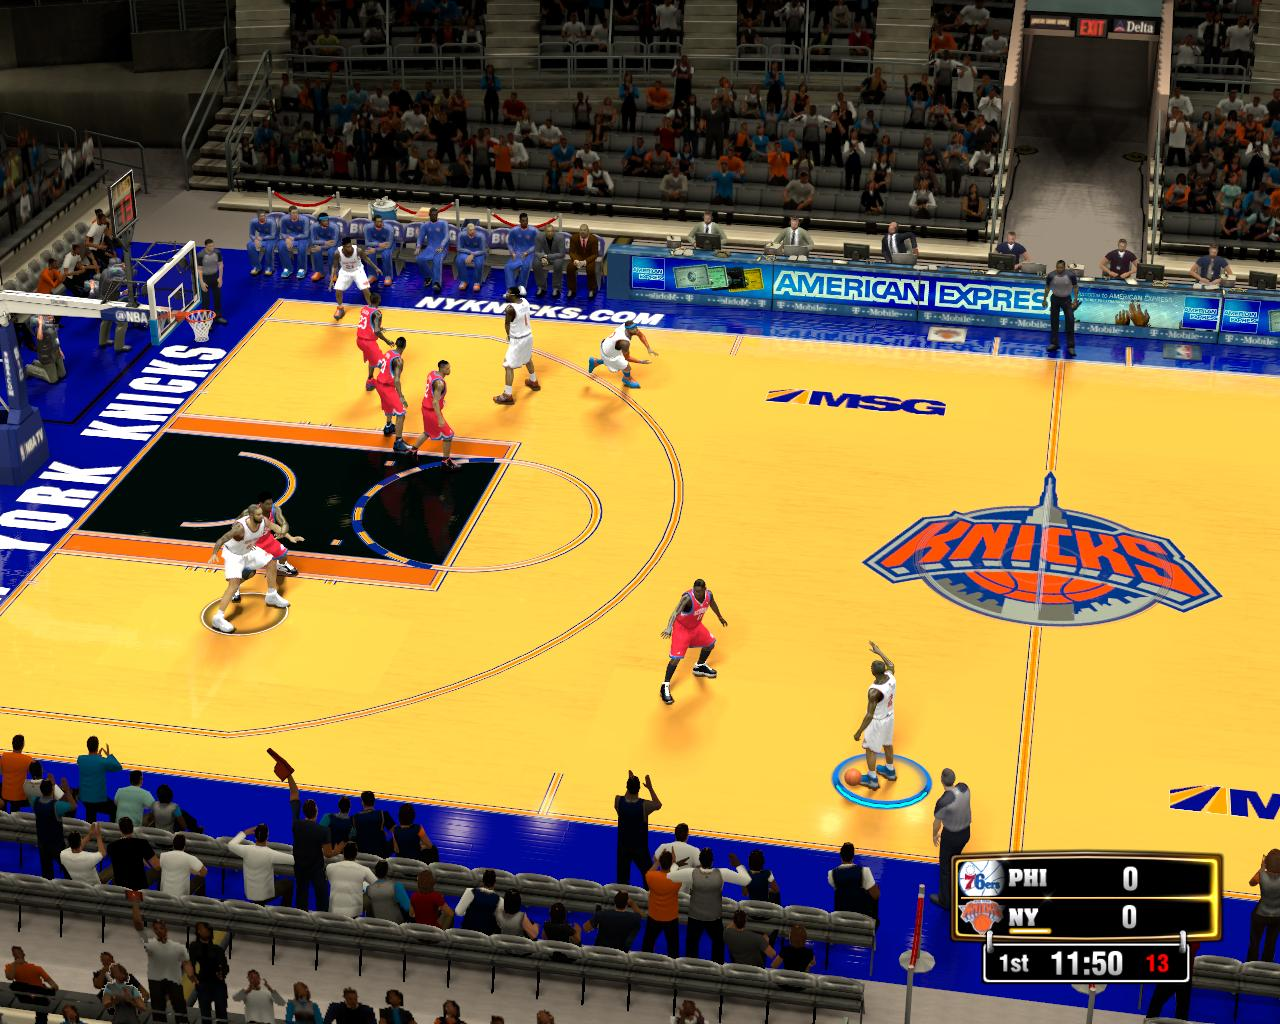 New York Knicks Fictional Court